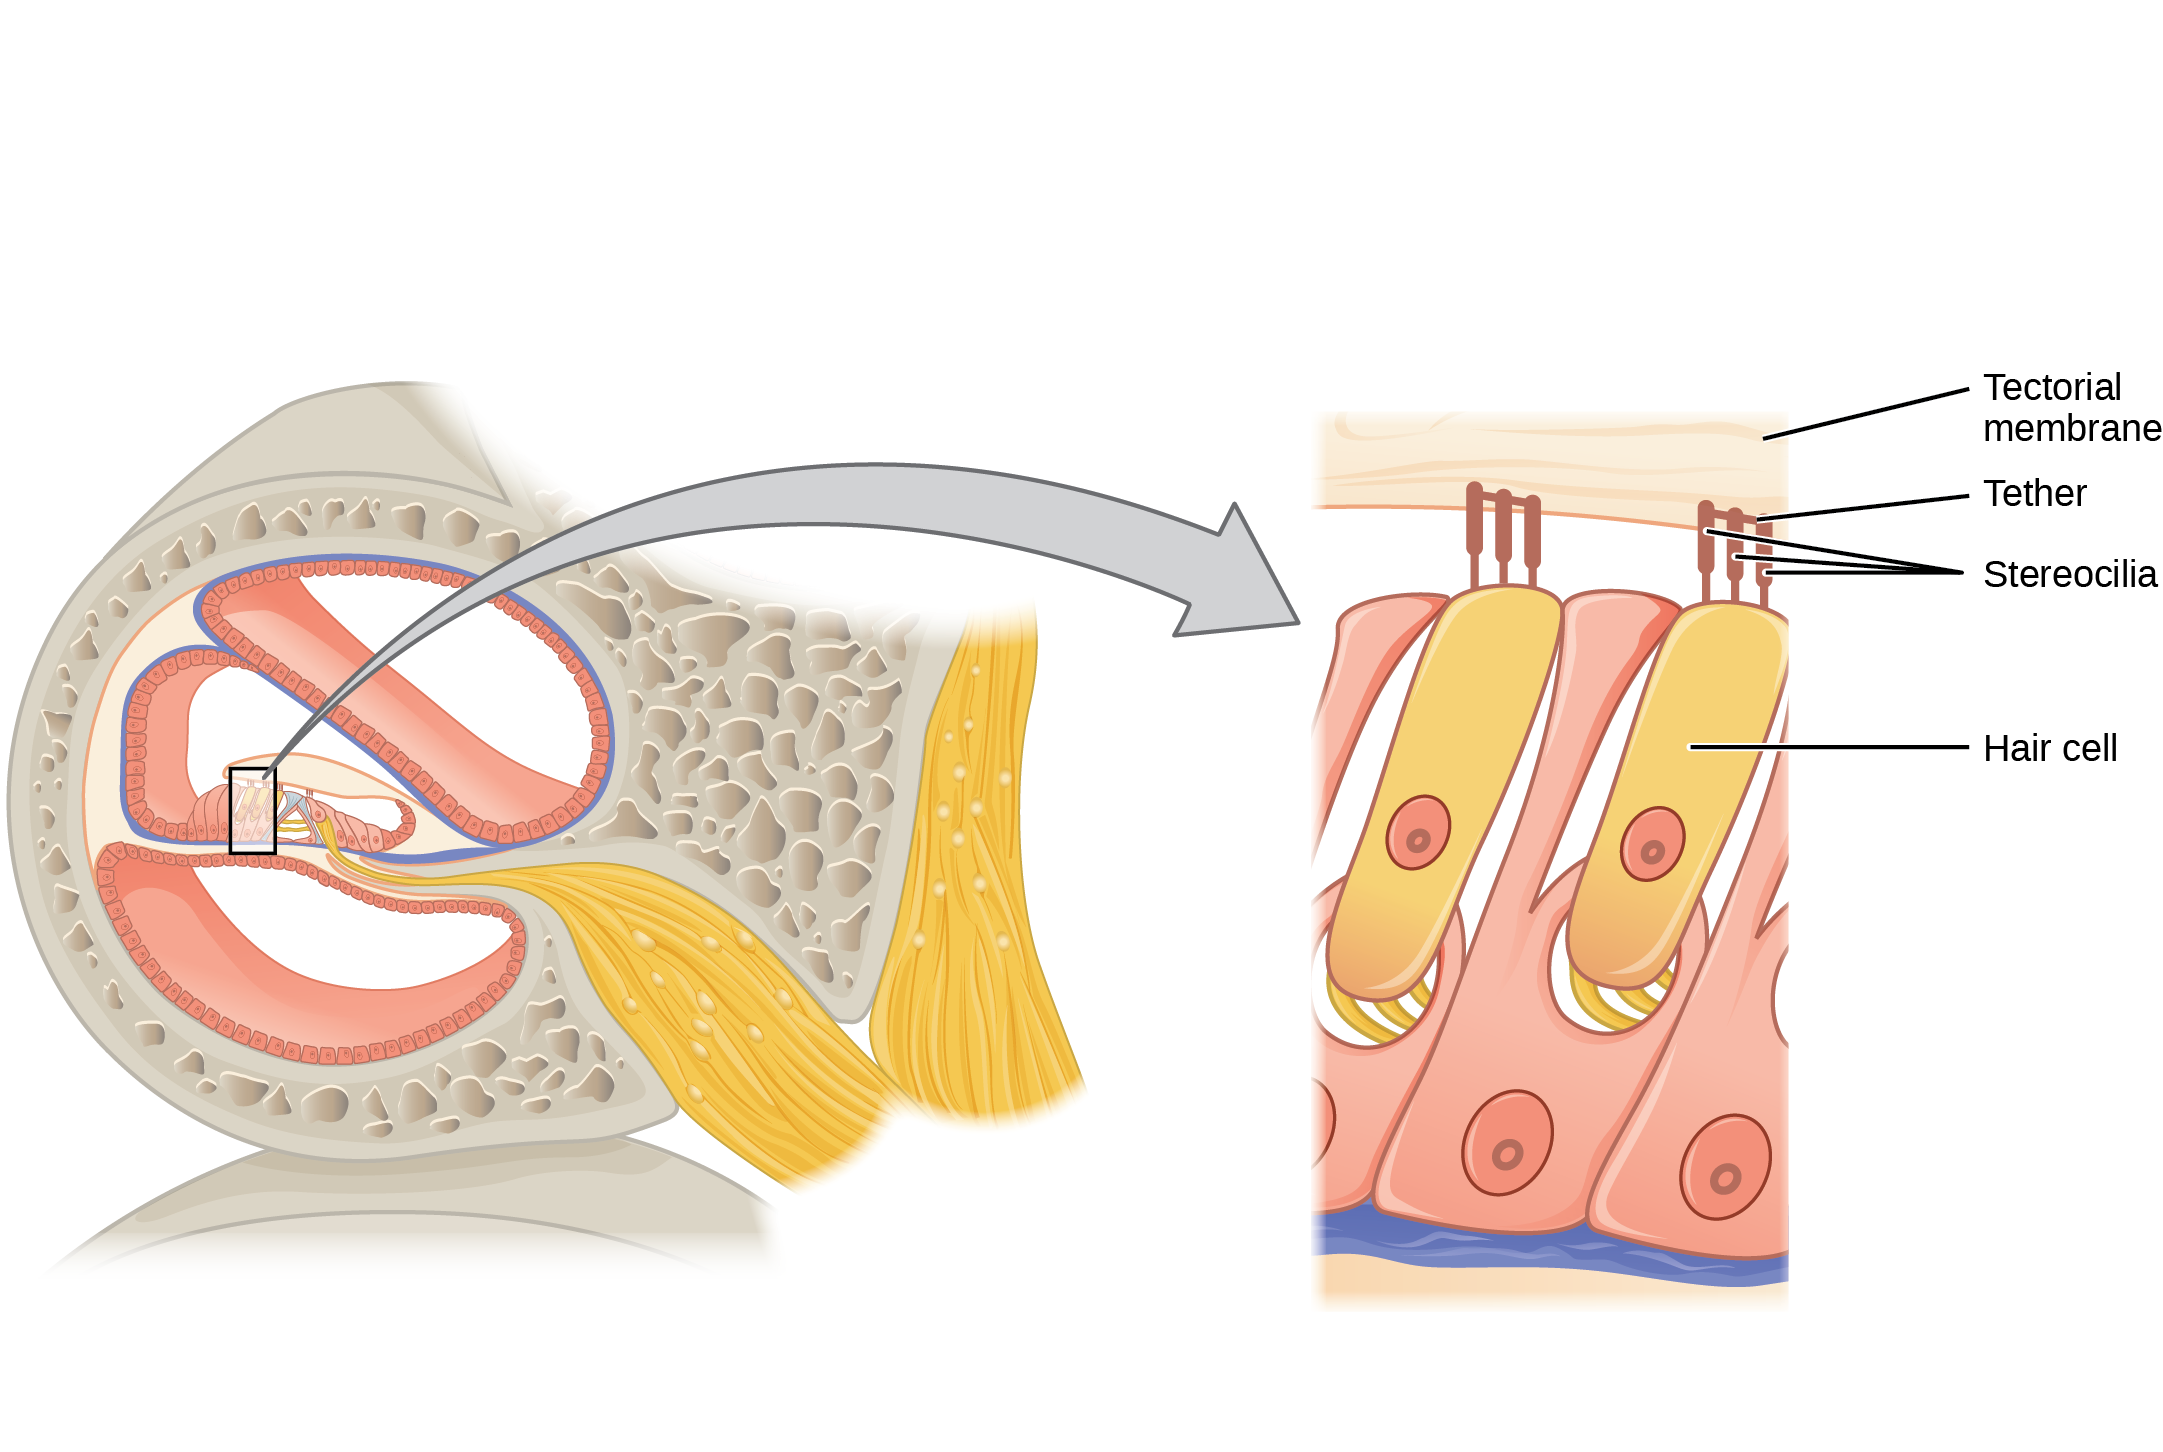 This diagram shows the structure of the hair cell. The right panel shows a magnified view of the hair cell. The hair cell is a mechanoreceptor with an array of stereocilia emerging from its apical surface. The stereocilia are tethered together by proteins that open ion channels when the array is bent toward the tallest member of their array, and closed when the array is bent toward the shortest member of their array.